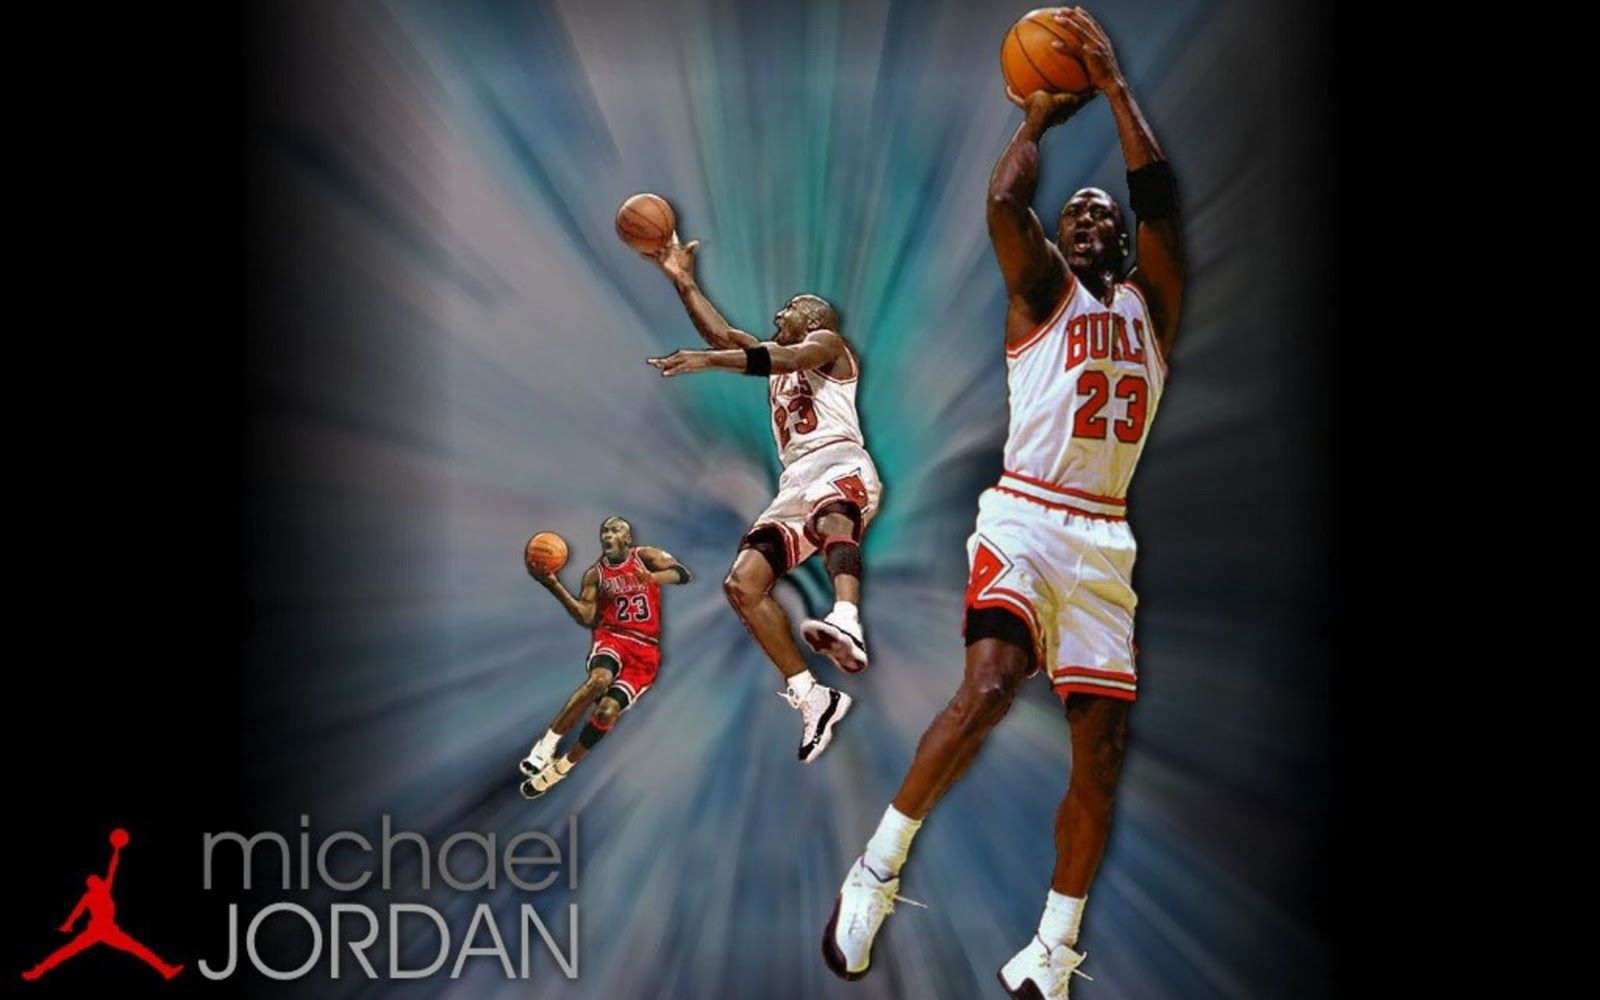 Nba Basketball Players In Action Wallpaper Playing Page 3 Awesome